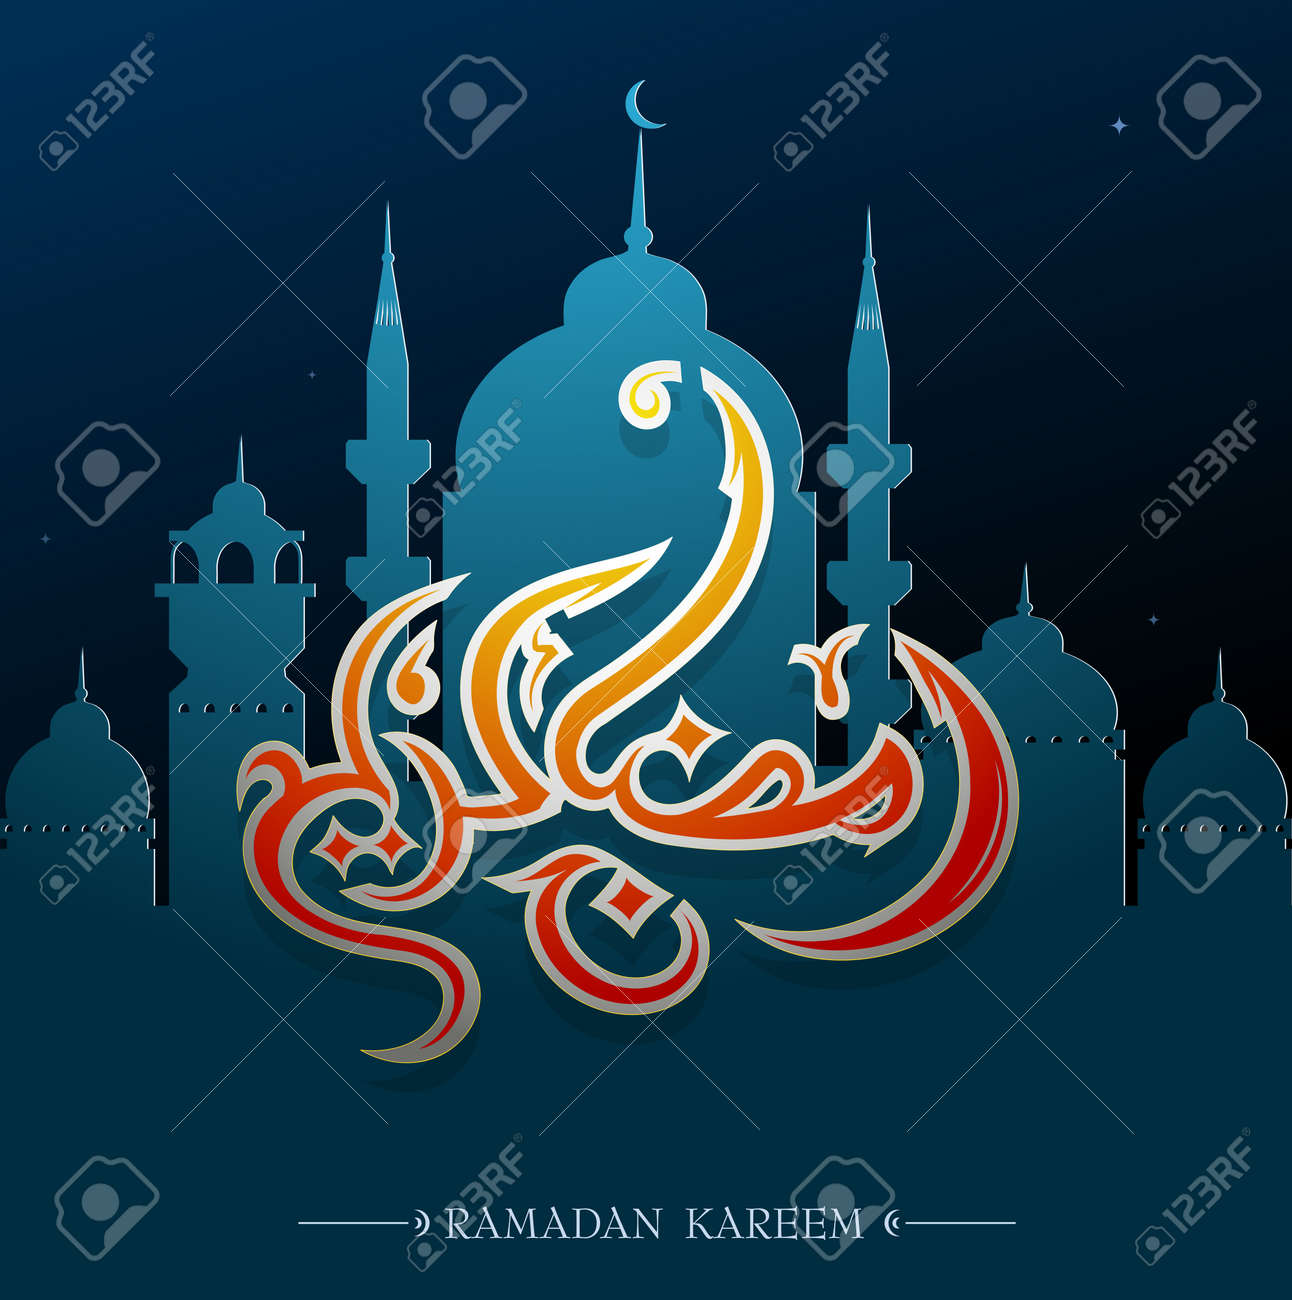 Ramadan greeting card design with mosque and calligraphy greetings ramadan greeting card design with mosque and calligraphy greetings stock vector 29531976 kristyandbryce Choice Image